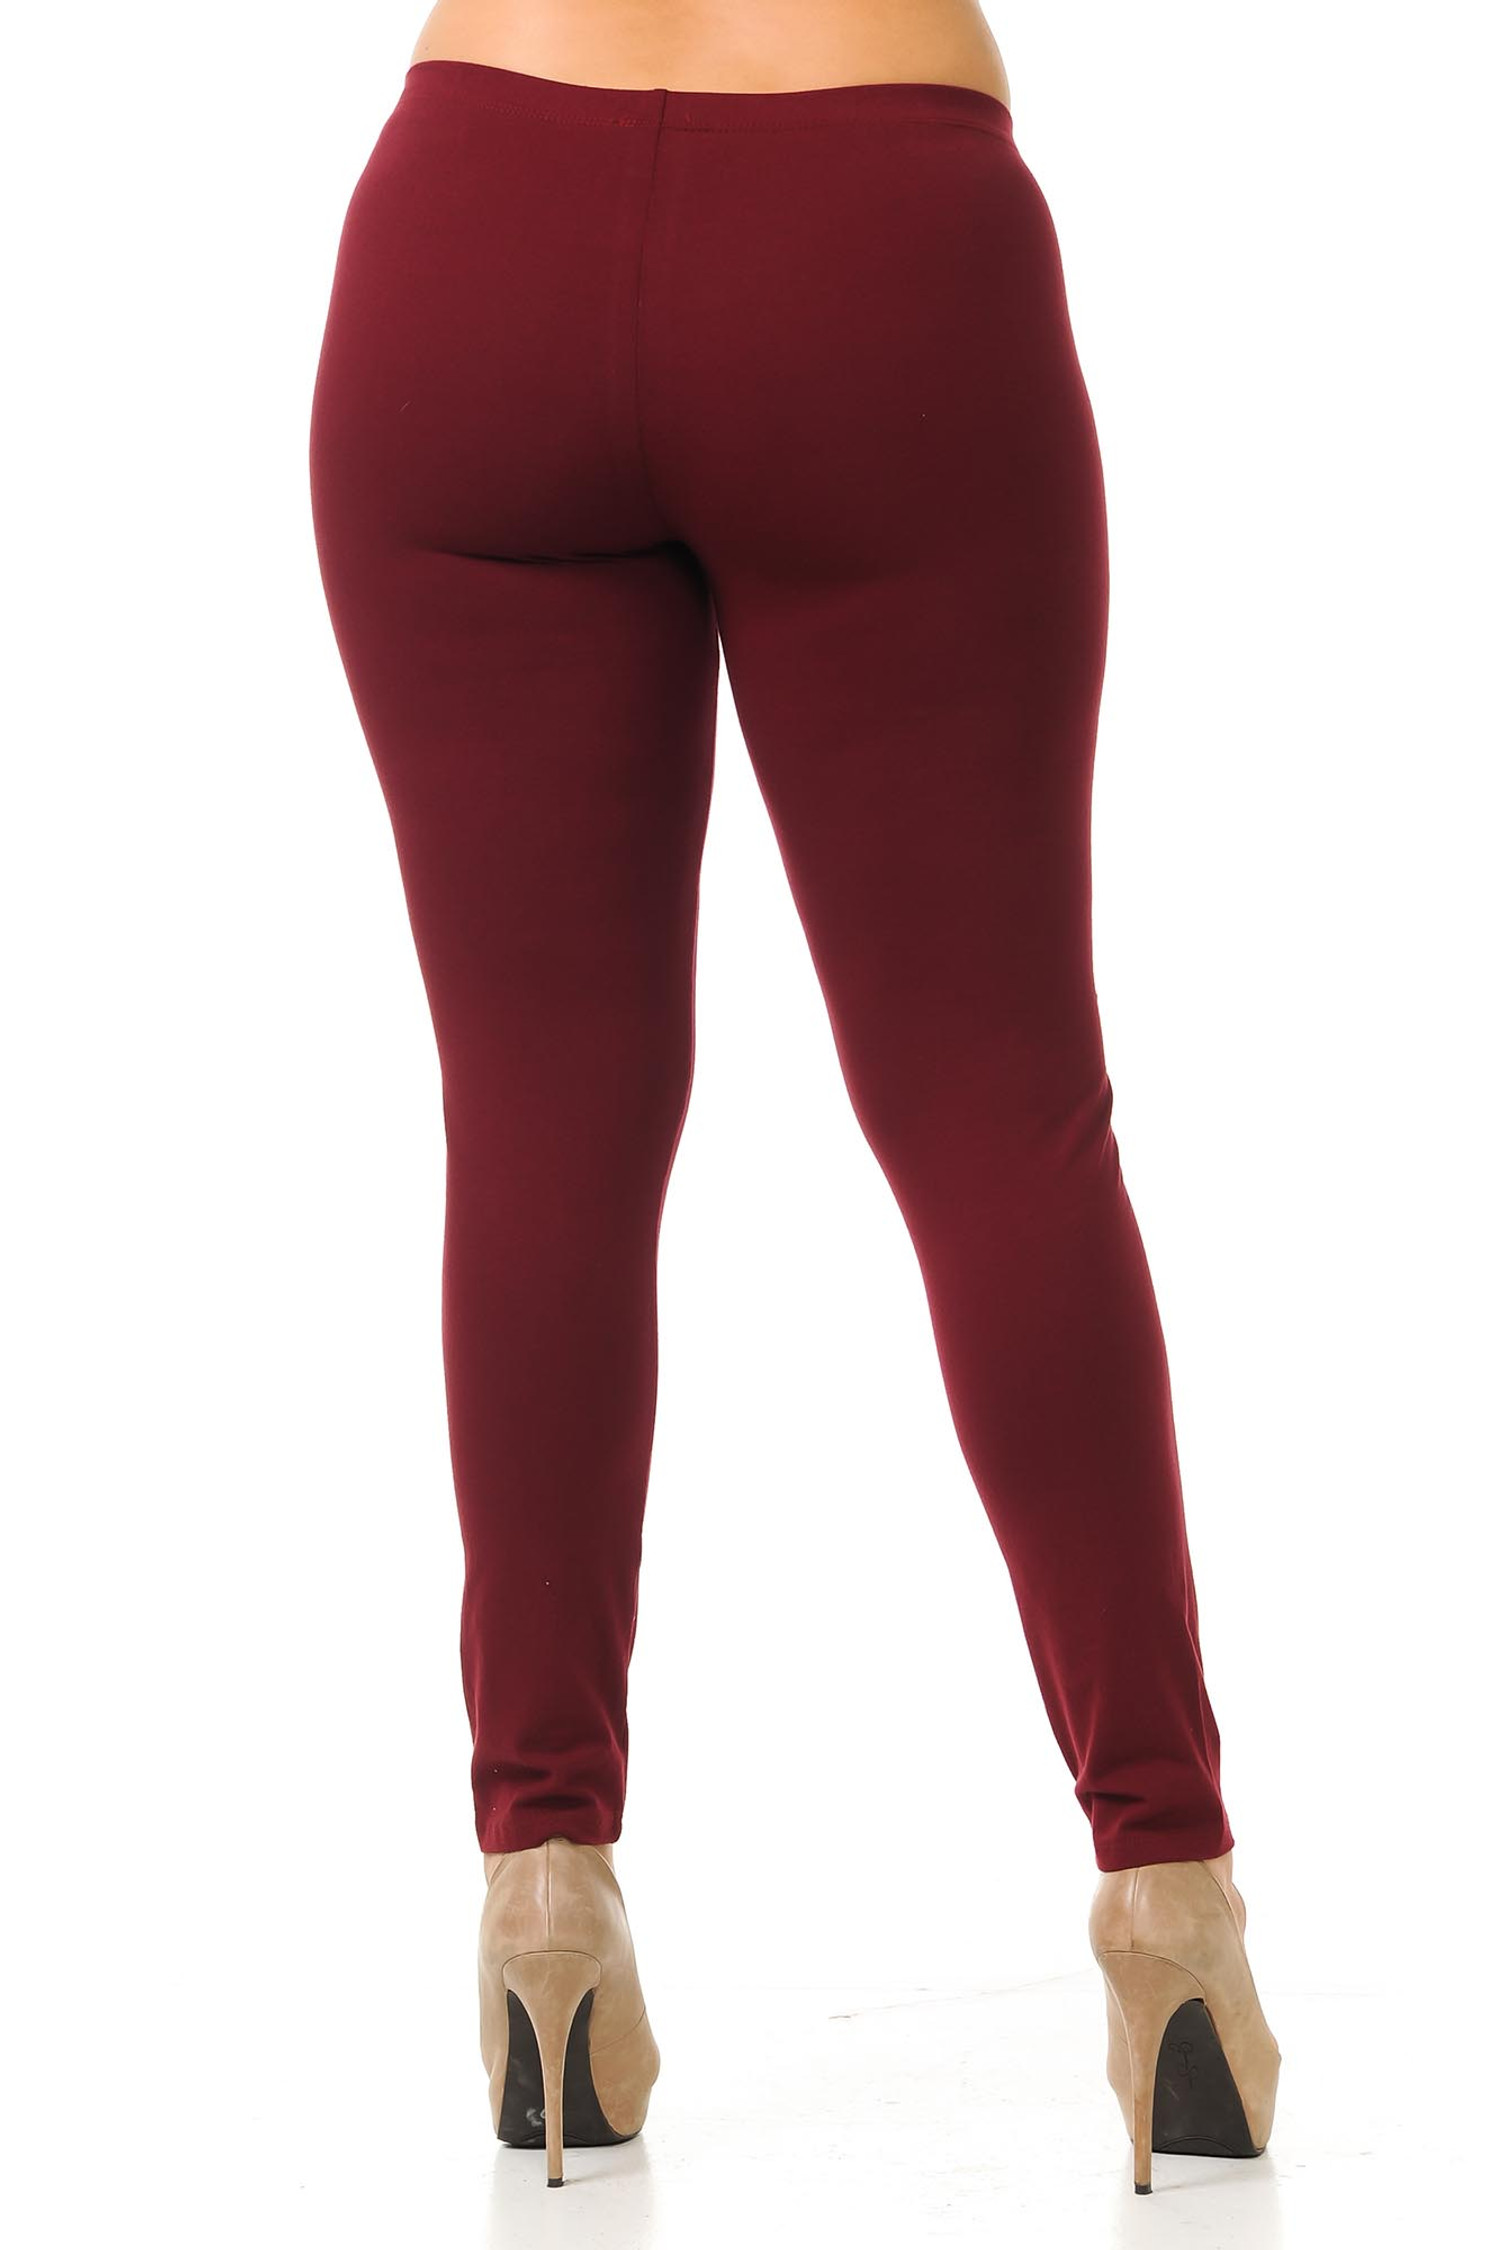 Rear view image of Burgundy USA Cotton Full Length Leggings - Plus Size